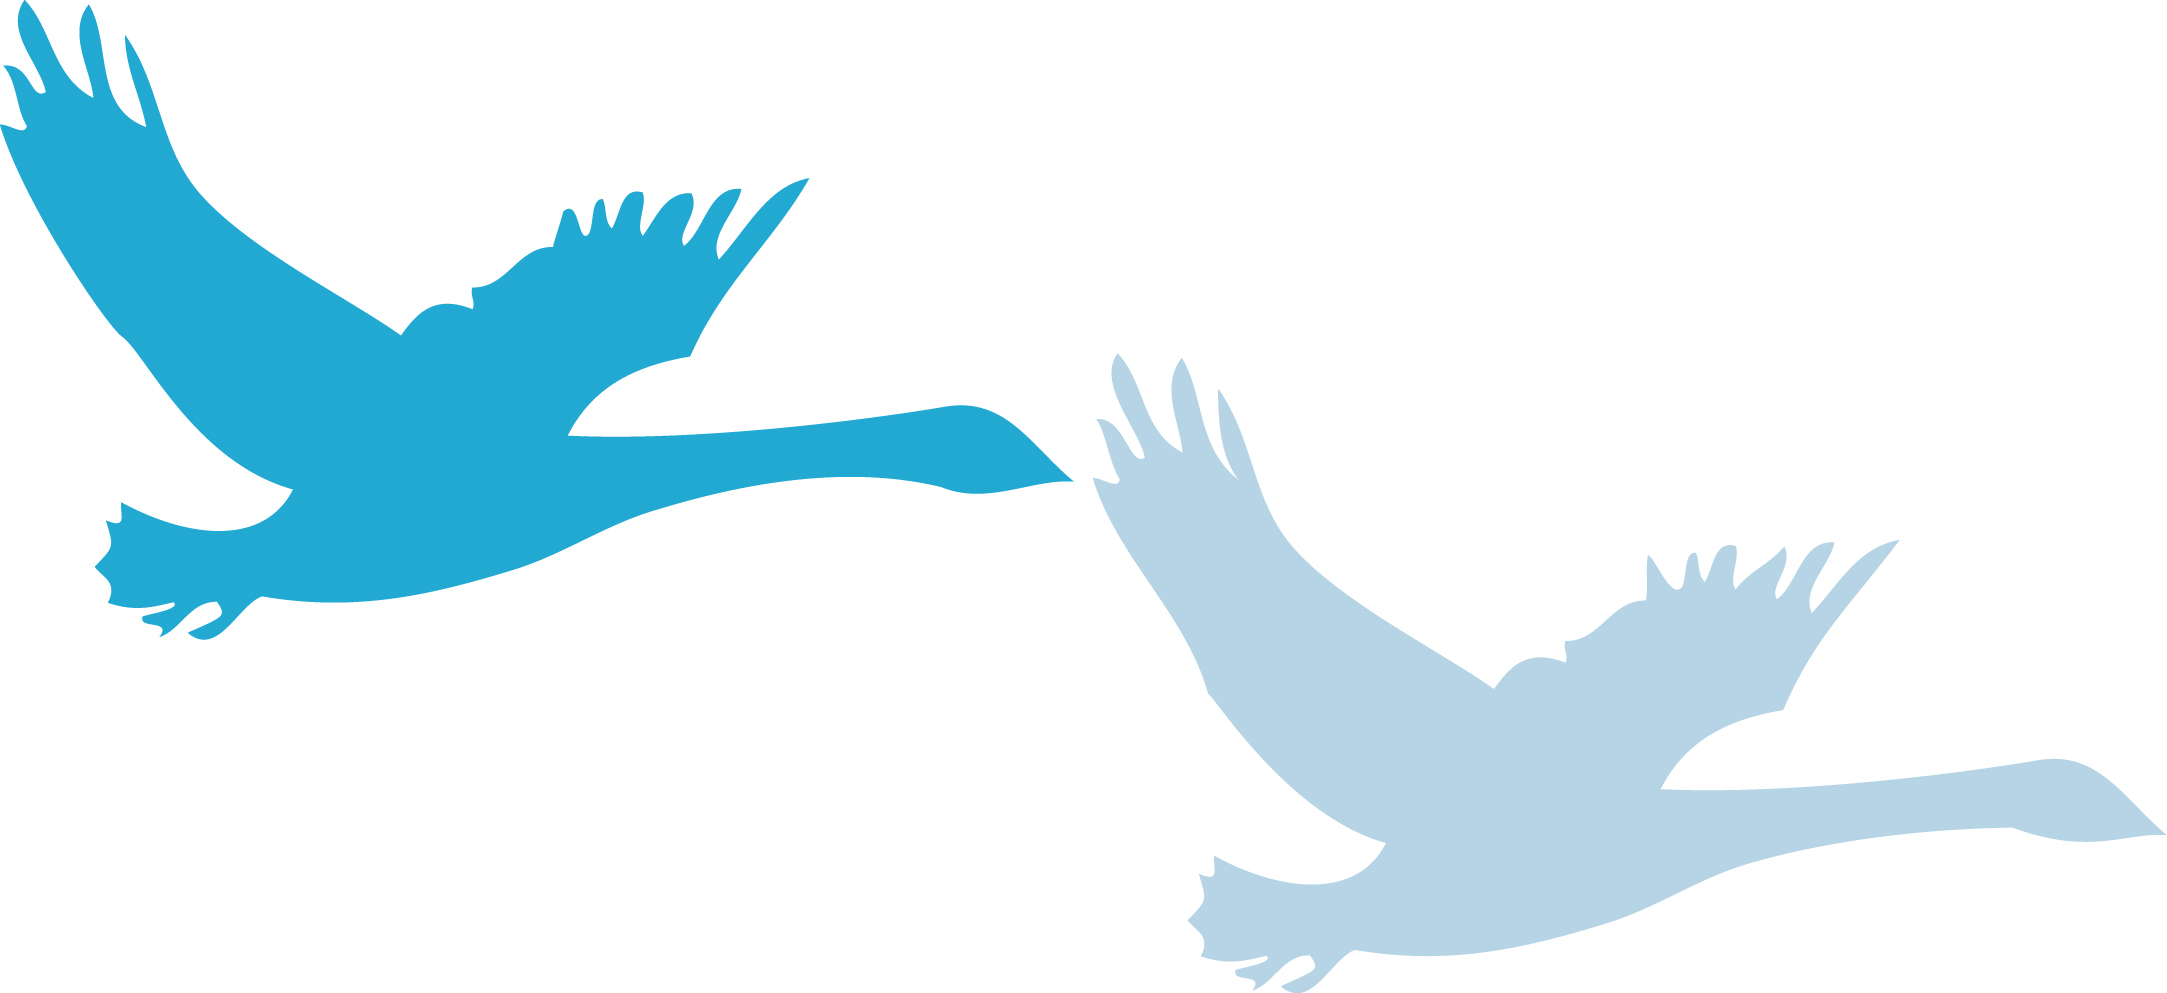 Pulborough Parish Council logo - two swans flyers in two shades of blue